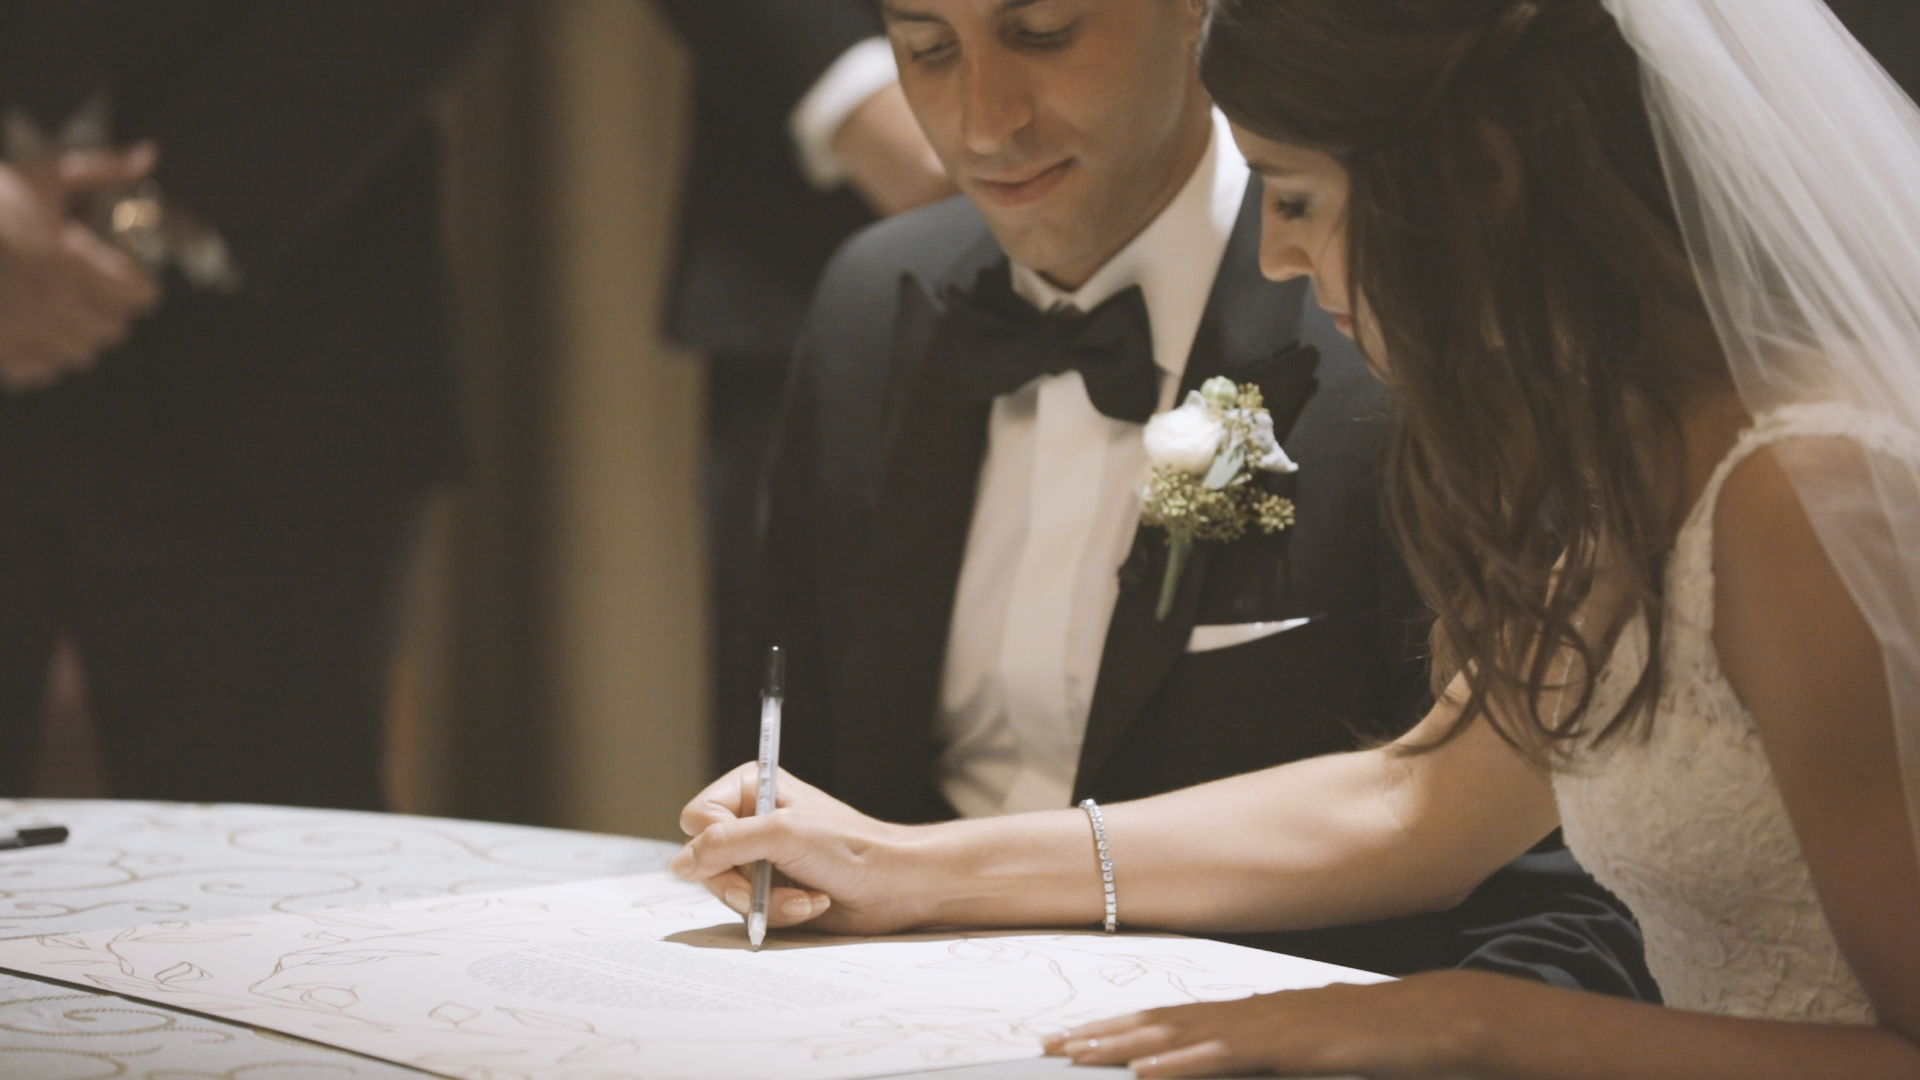 Royal Sonesta New Orleans Wedding - Bride Film